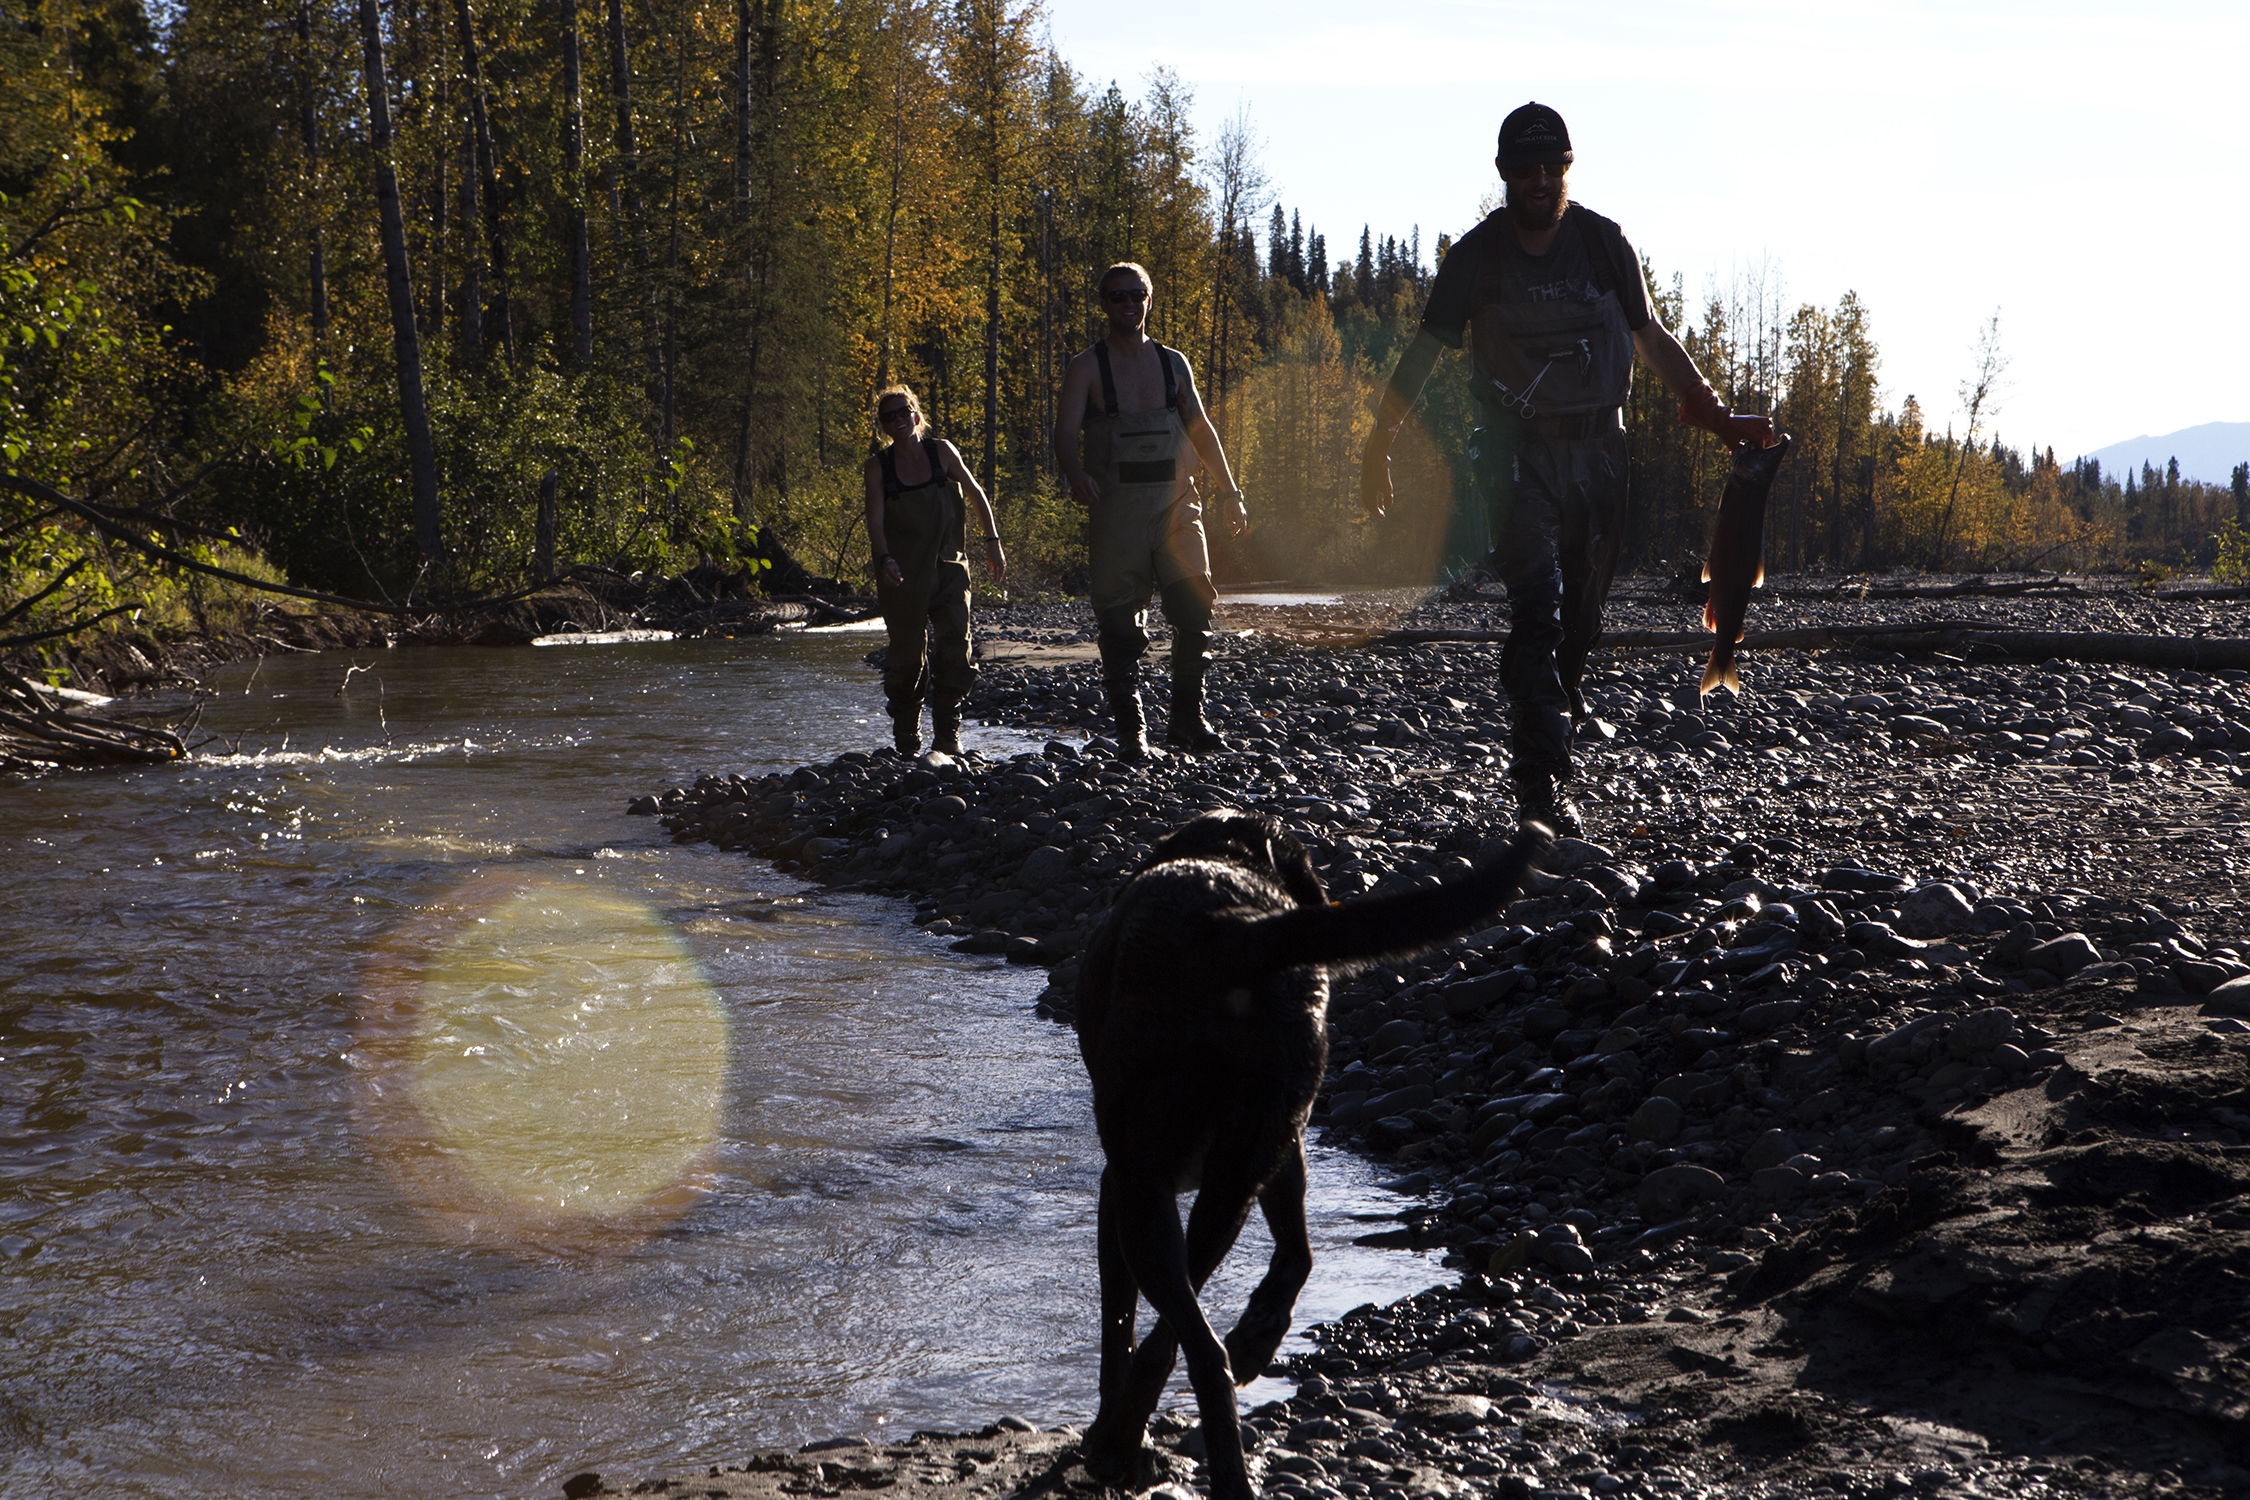 Jensen Heabler, Austin and Whitney Krempin enjoy the autumn afternoon hiking and catching Silvers and Reds along a stream outside Talkeenta, Alaska. © Photo by Gail Fisher